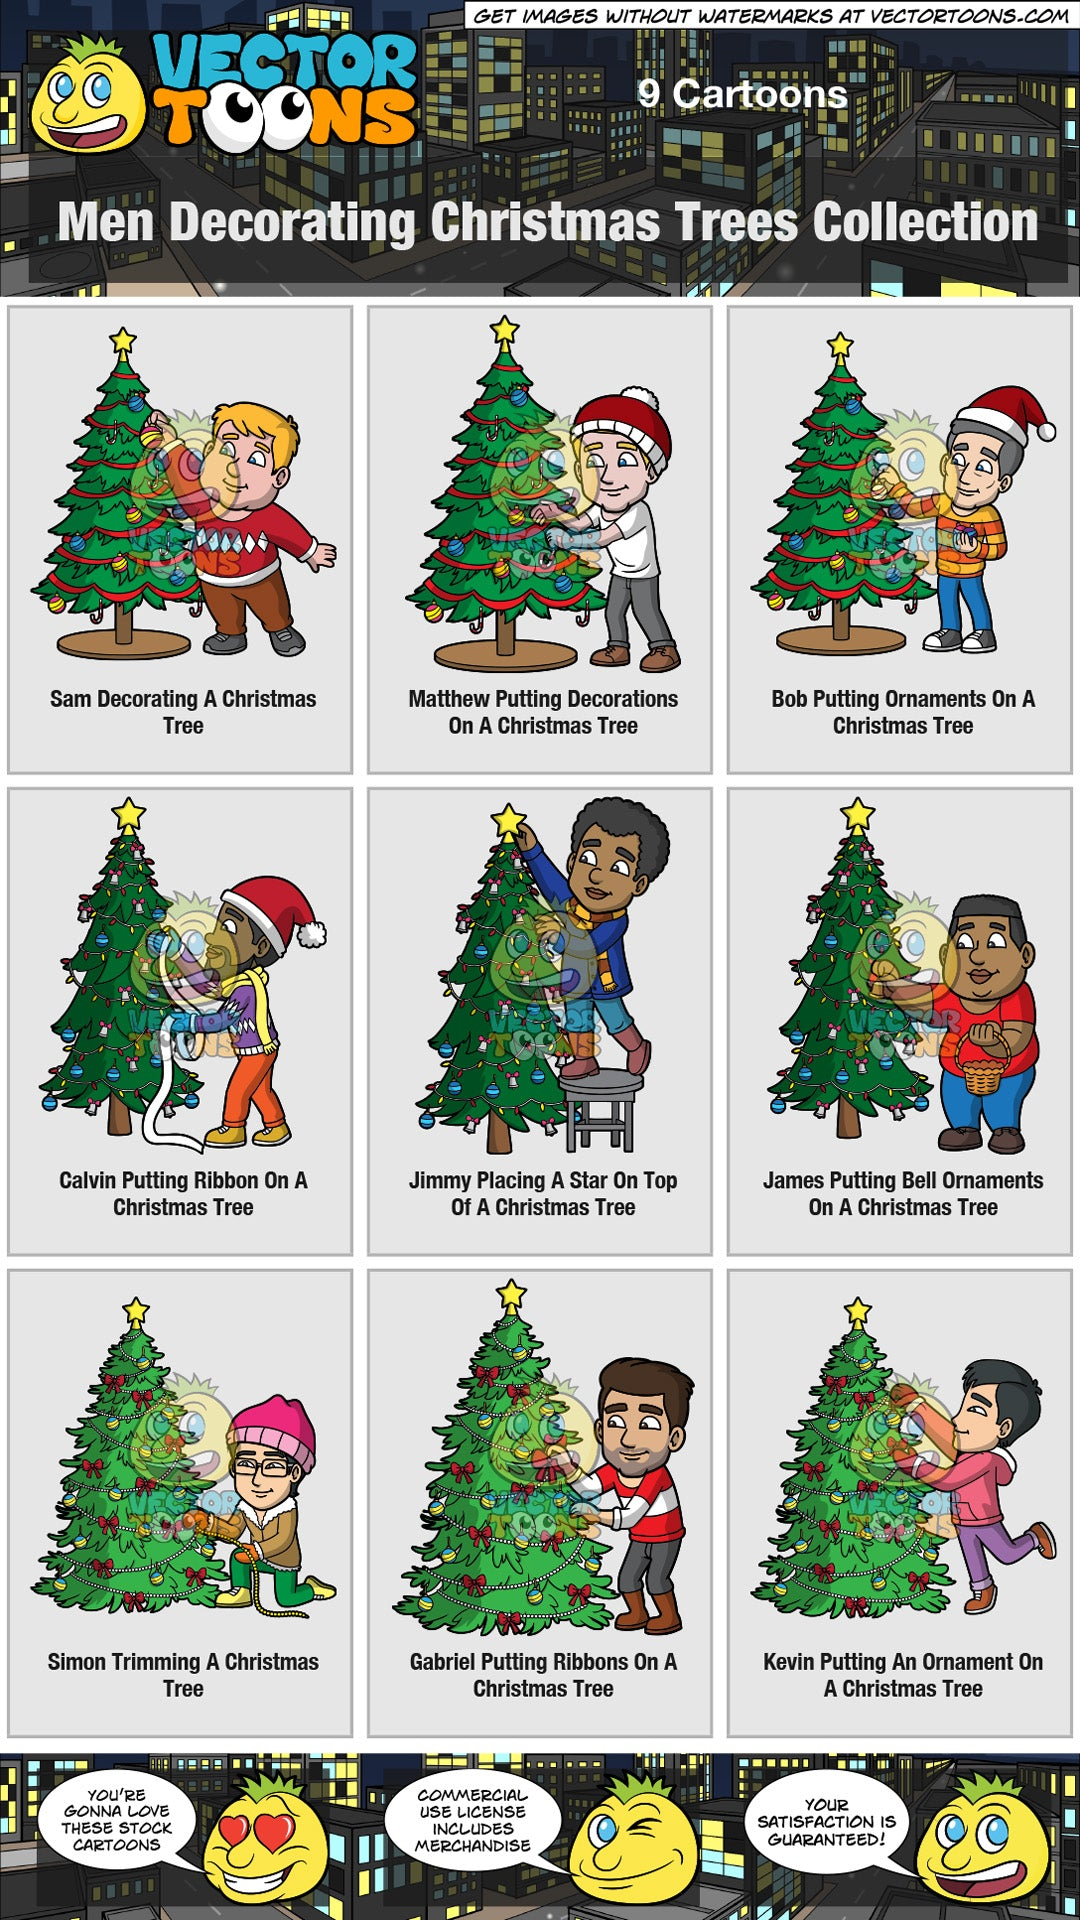 Men Decorating Christmas Trees Collection